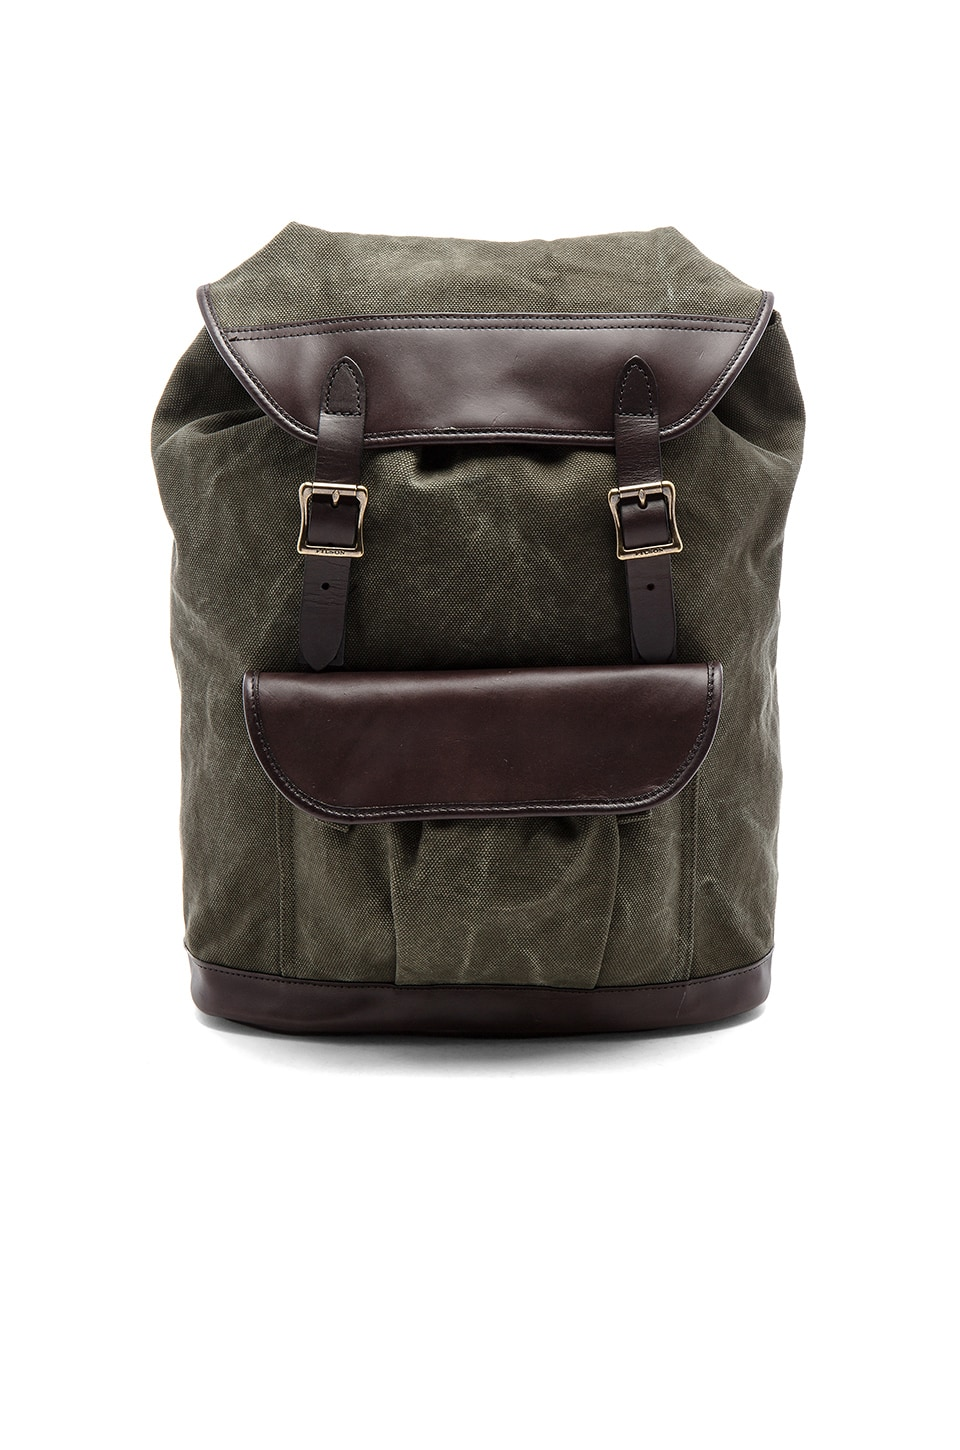 Filson coupon code